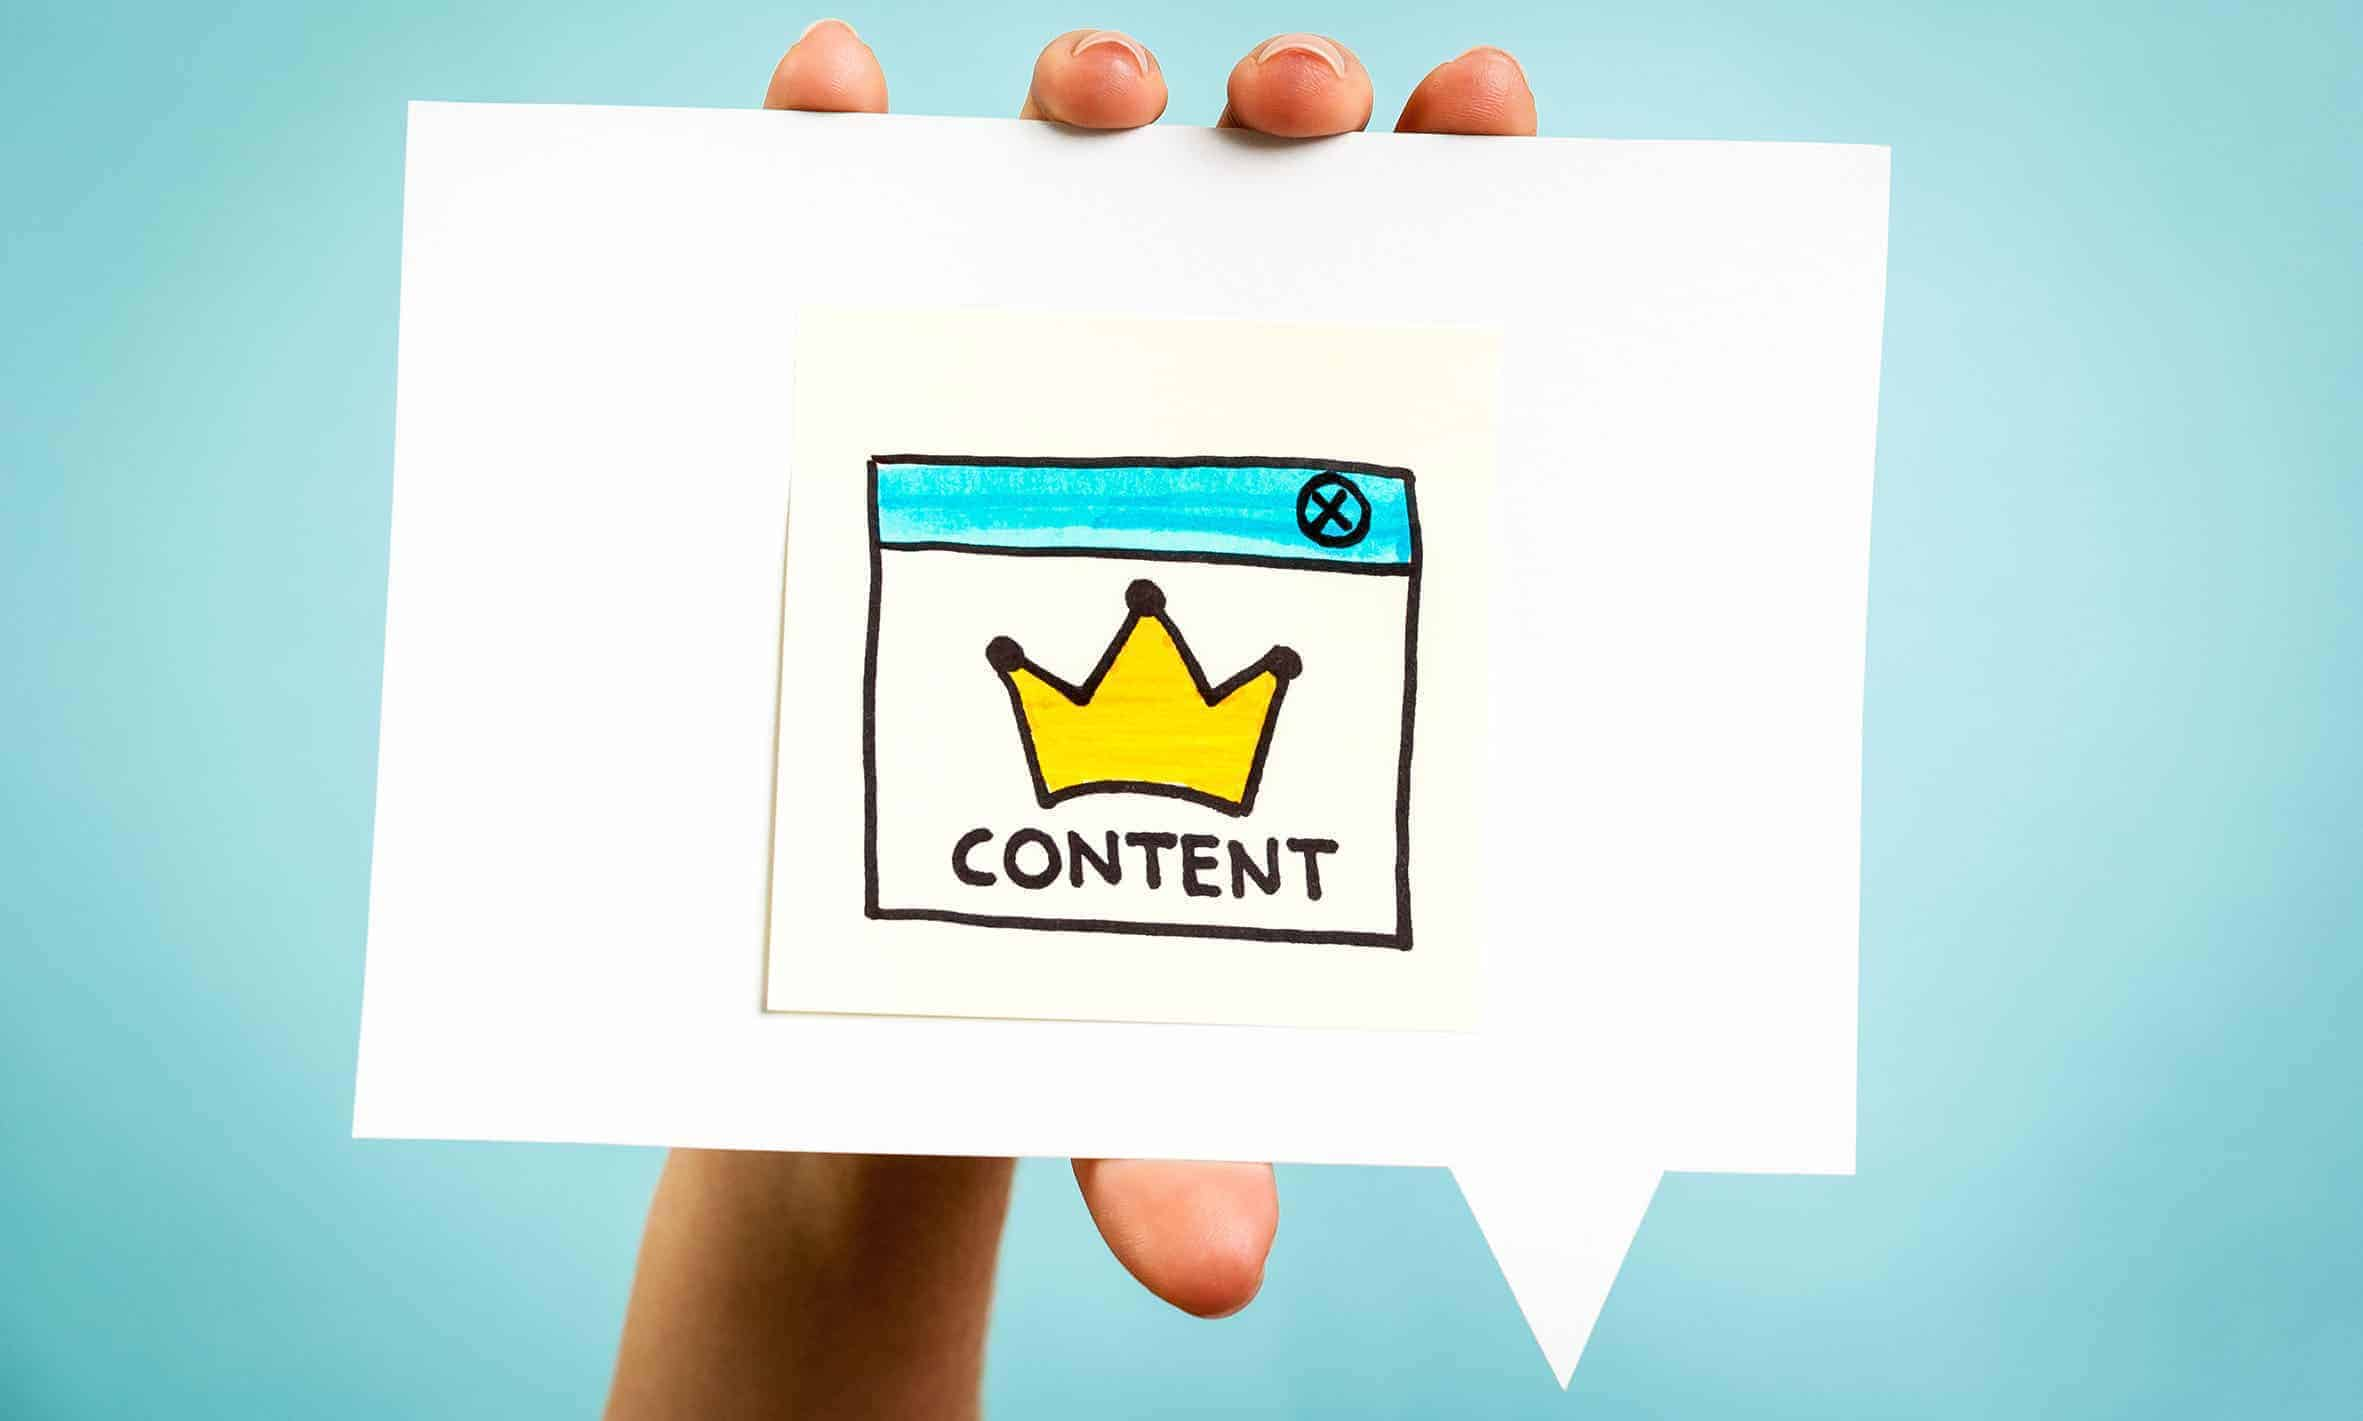 seo tips how to optimizing website content